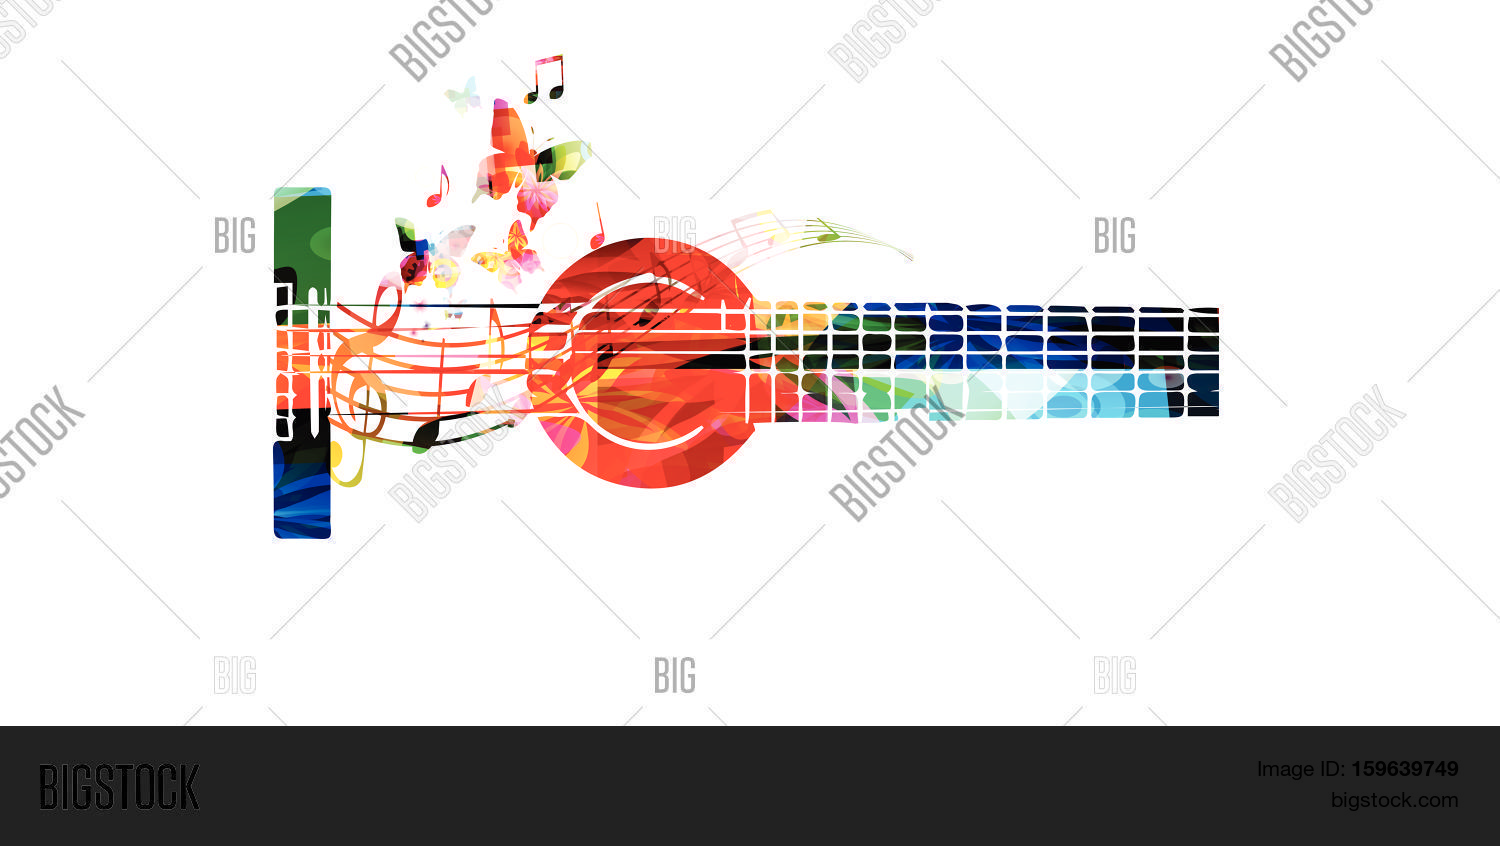 Colorful Guitar Music Vector Photo Free Trial Bigstock